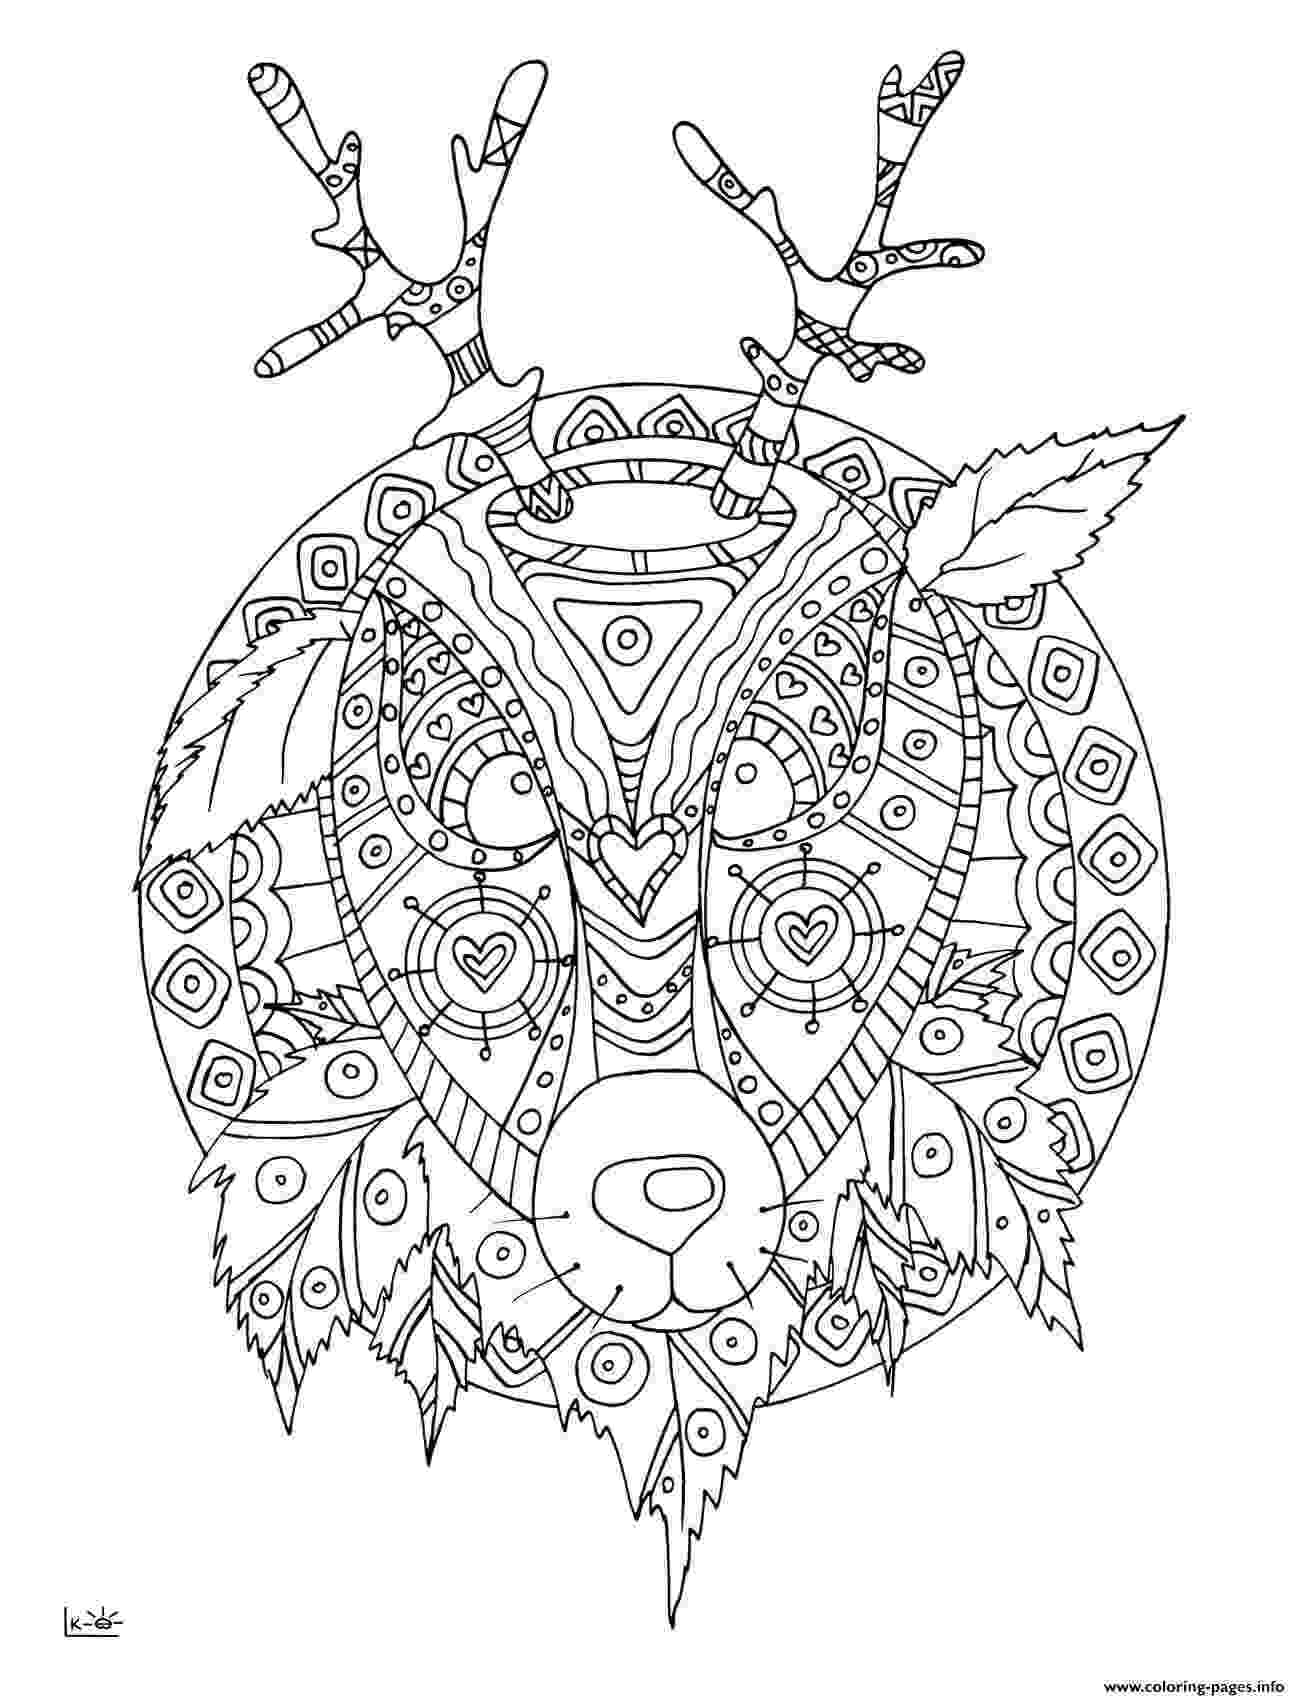 tribal coloring pages bear with tribal pattern coloring page free printable coloring tribal pages